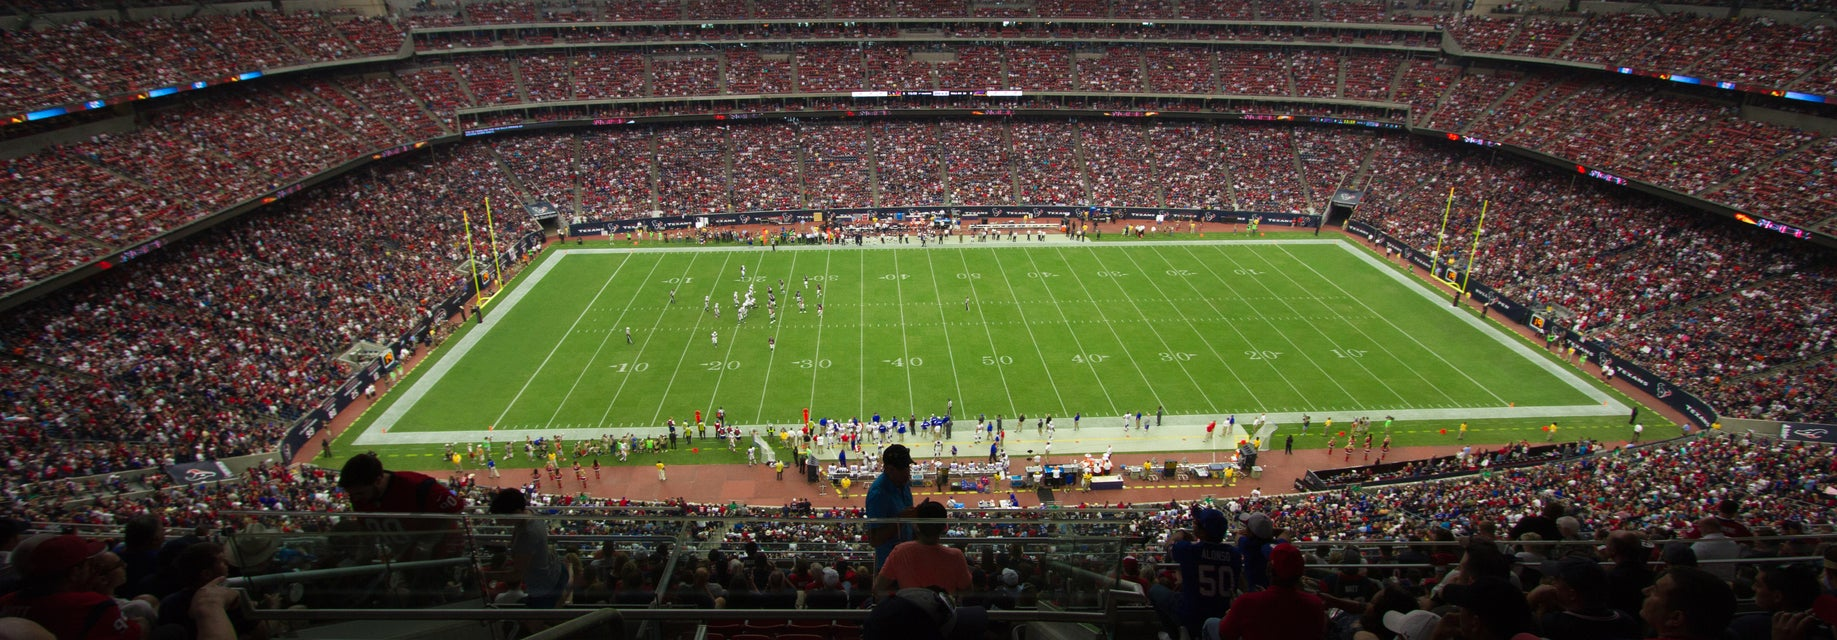 Seat view from Gridiron Sideline